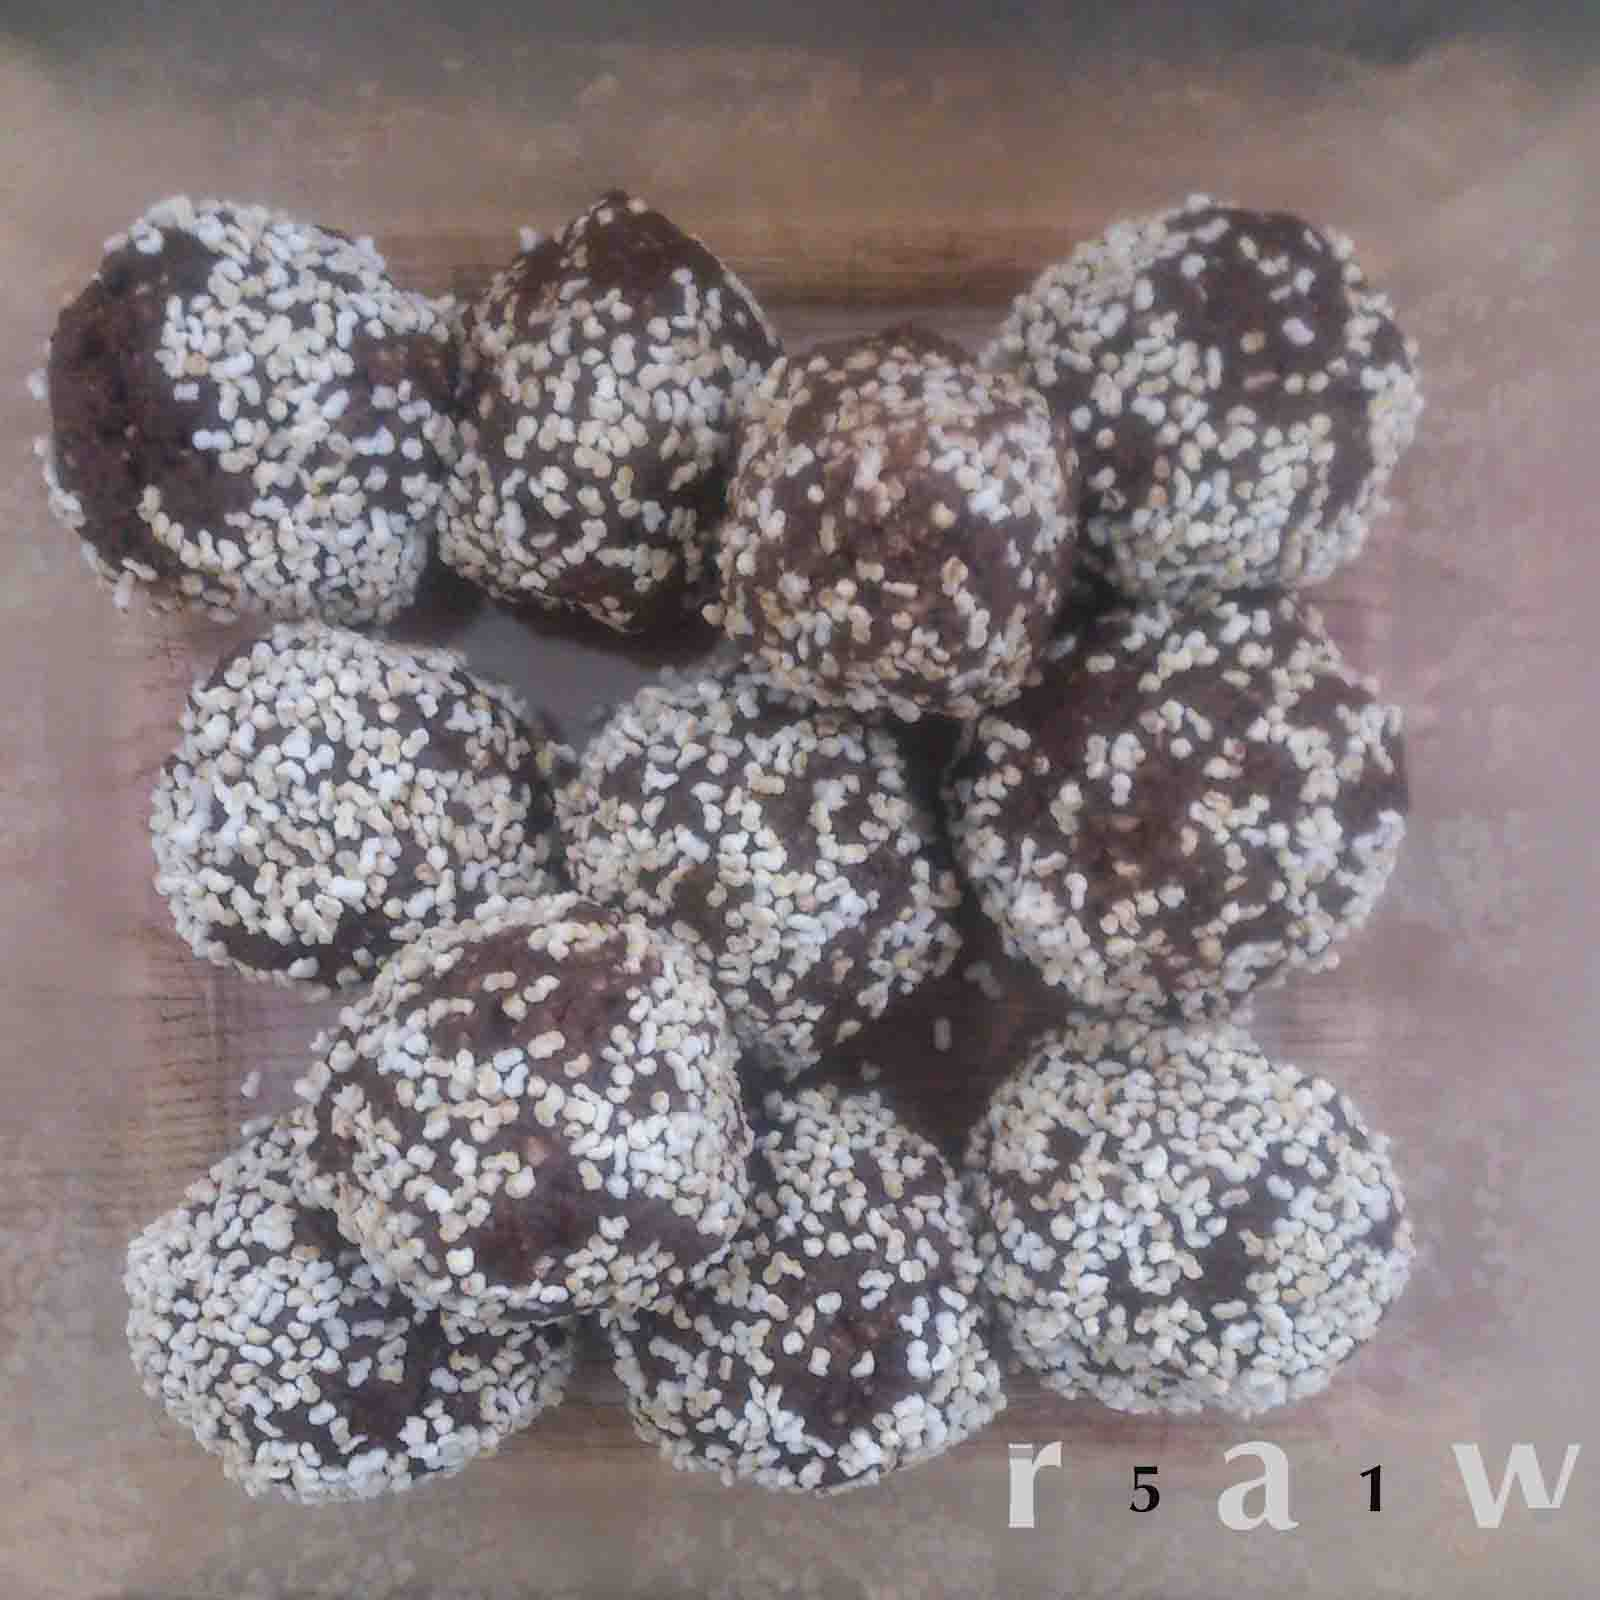 51raw_ChocPeanutRawBalls.jpg